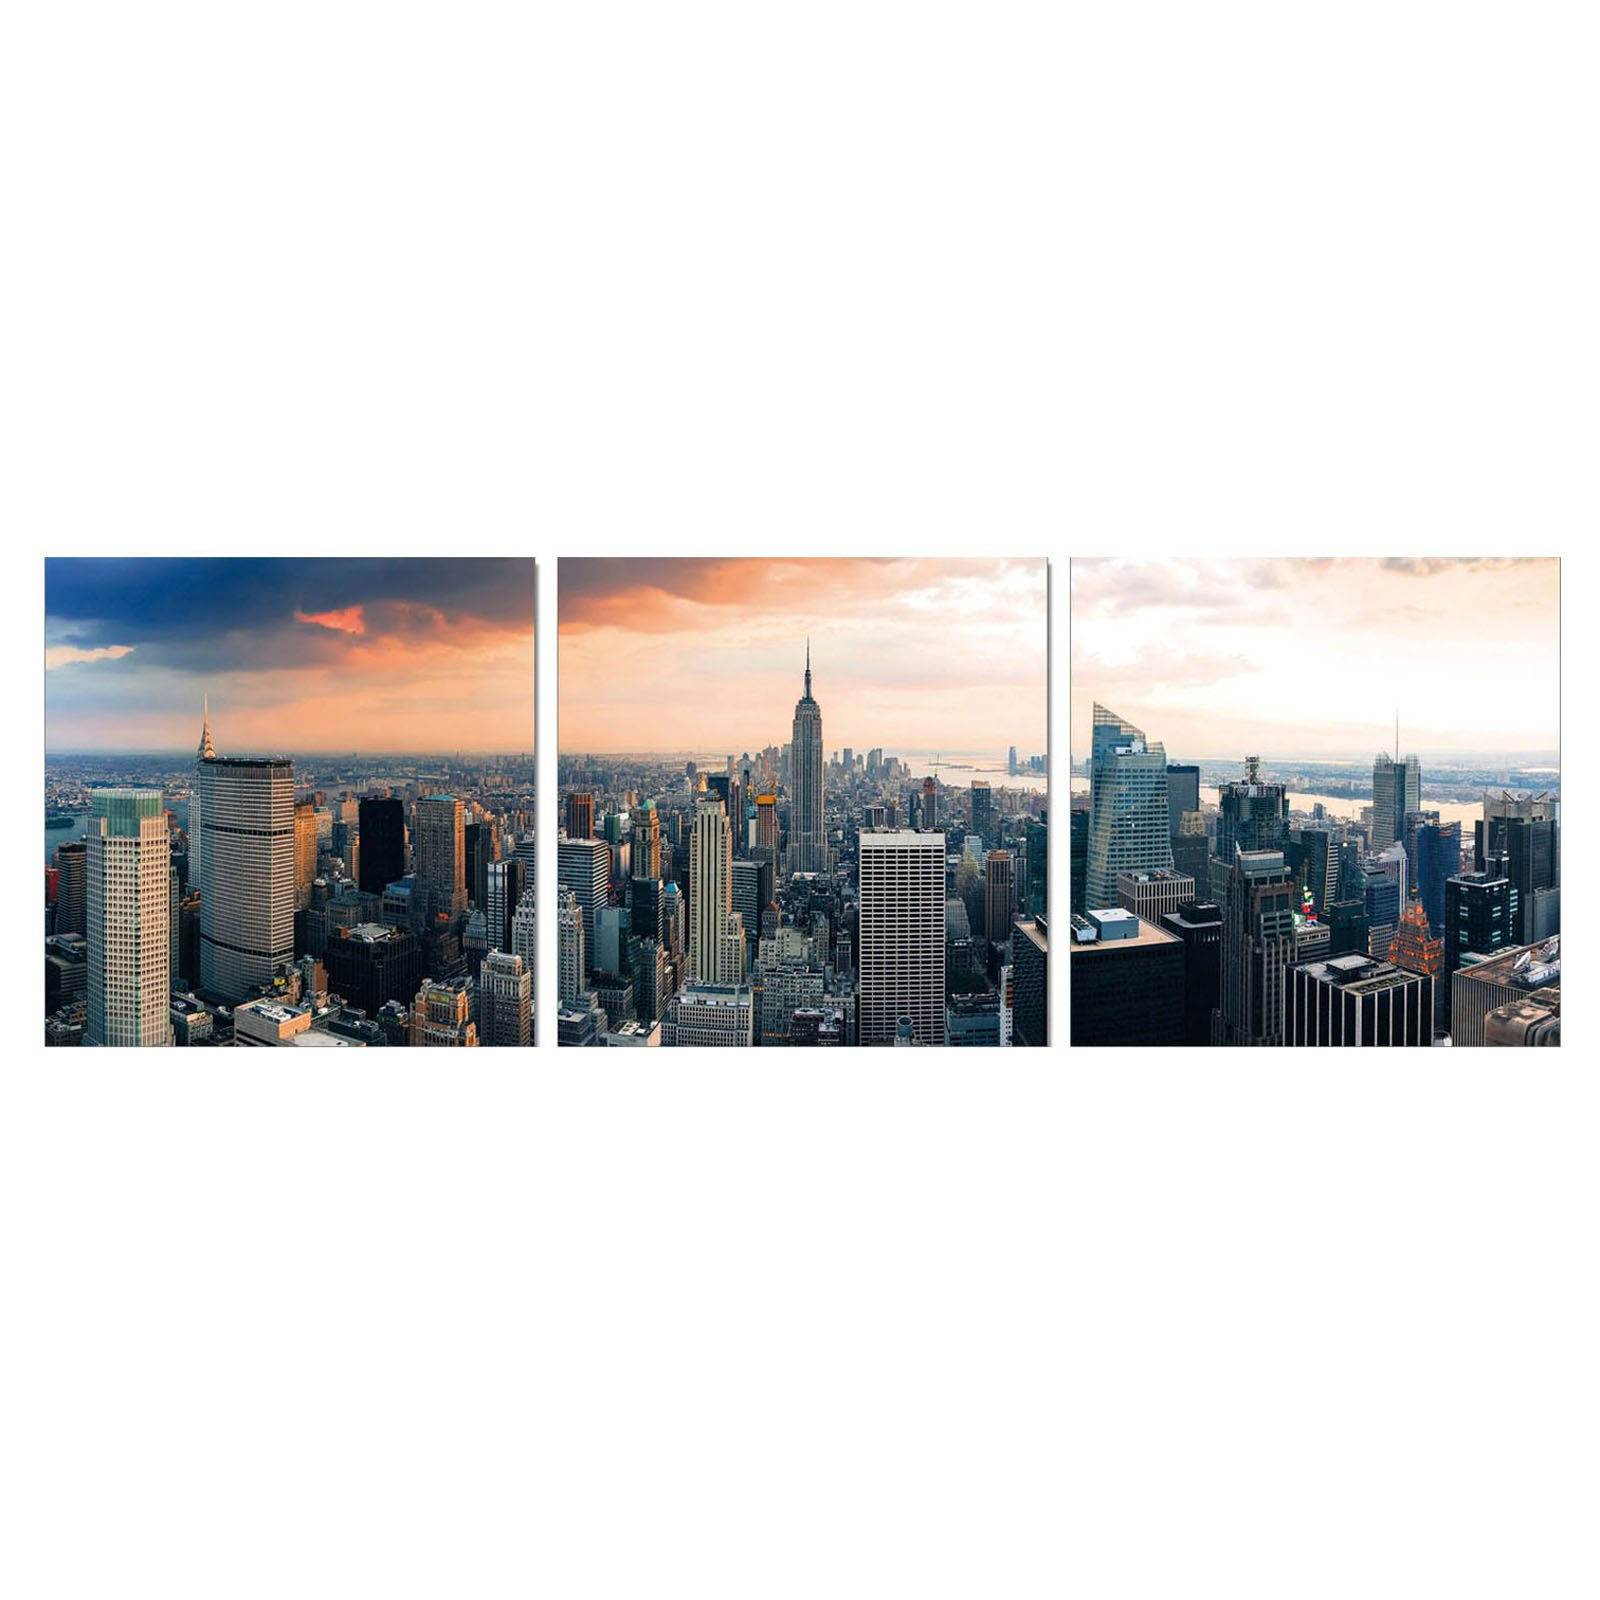 Furinno SeniA Empire State City View 3-Panel MDF Framed Photography Triptych Print, 48 x 16-in